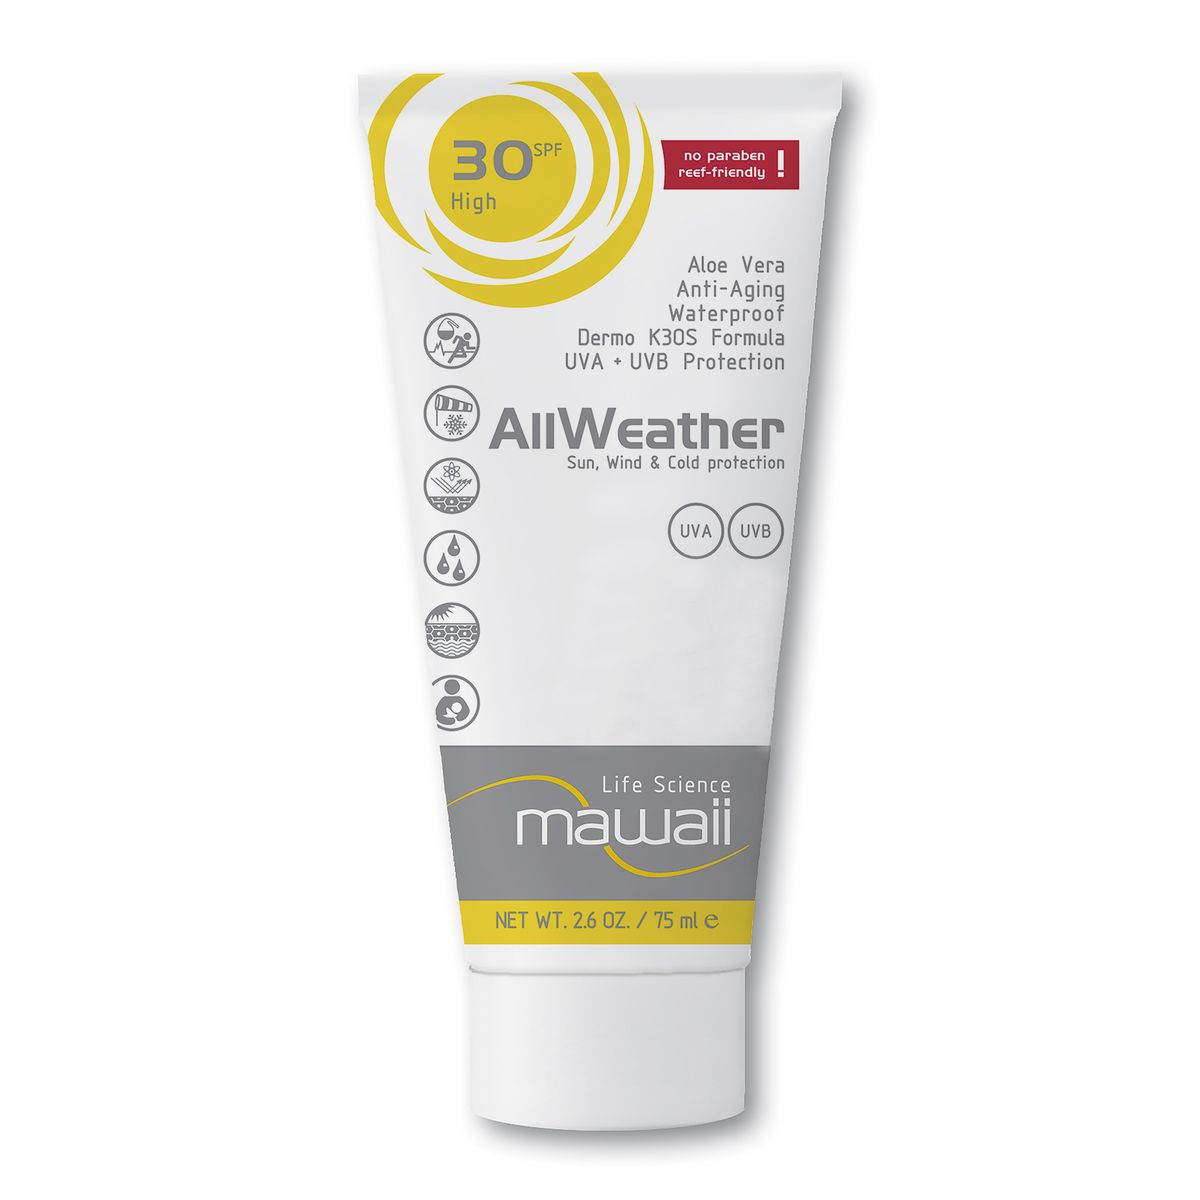 mawaii AllWeather Wind & Cold Protection SPF 30 sports suncream | Freehub body